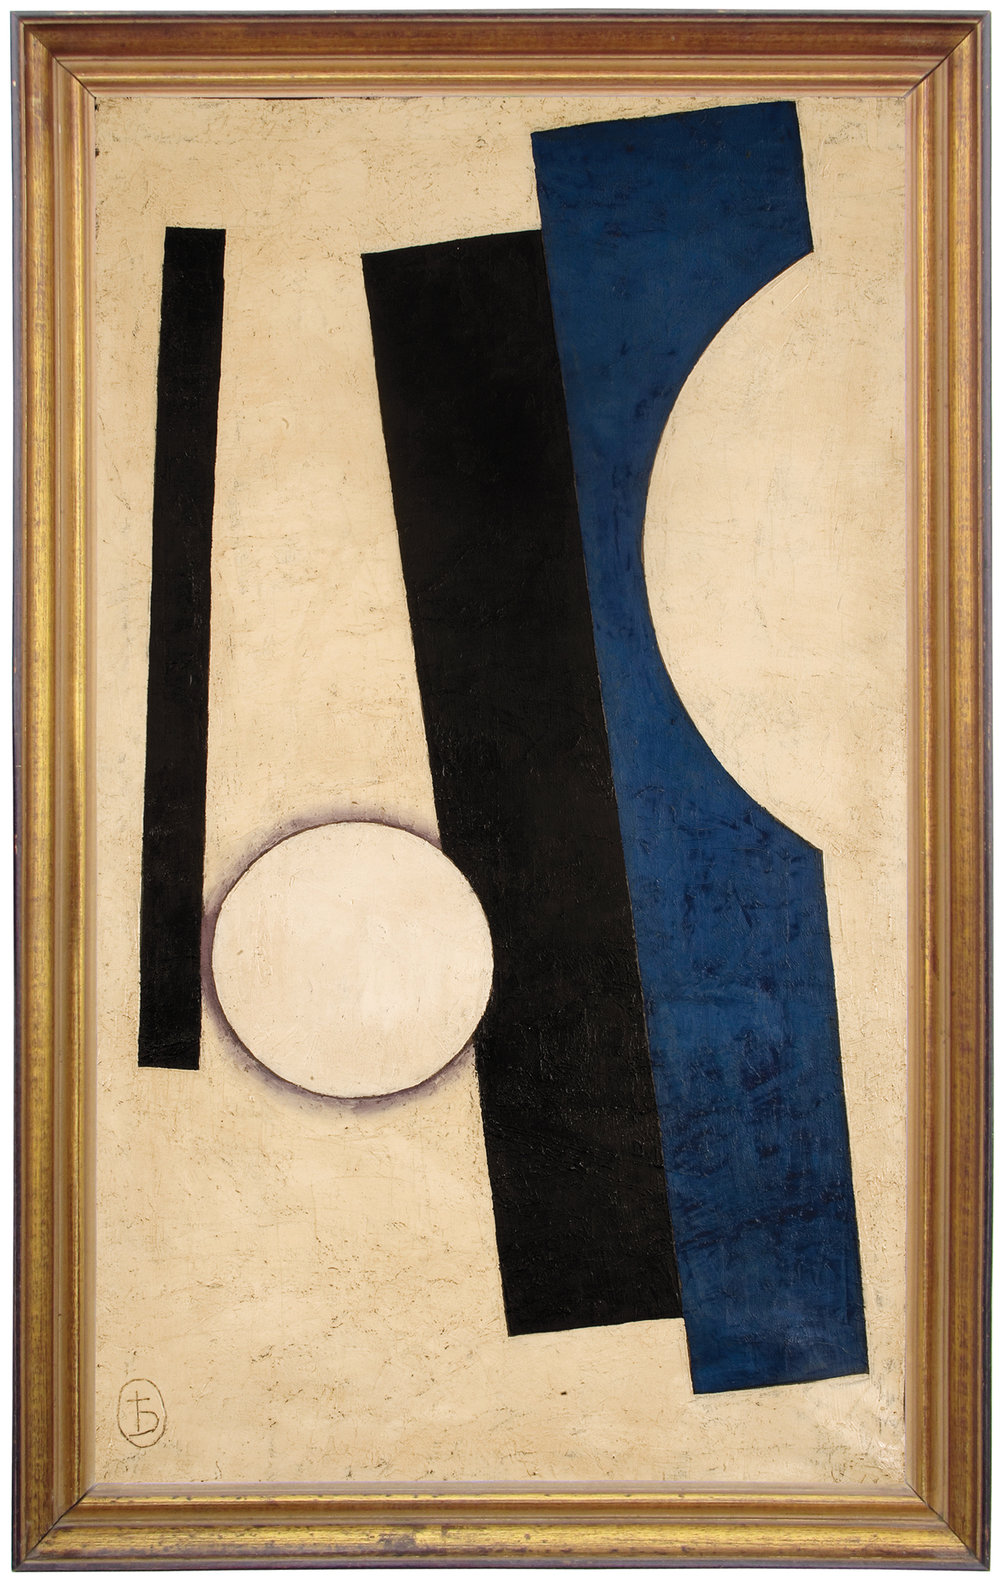 "Unattributed. Signed""b"" (archaic cyrillic ""yat"" symbol), on lower left front corner.  In the style of Liubov Popova. Faint mark on reverse, appears to read ""1916"".    Oil on canvas. 83 x 50 cm."